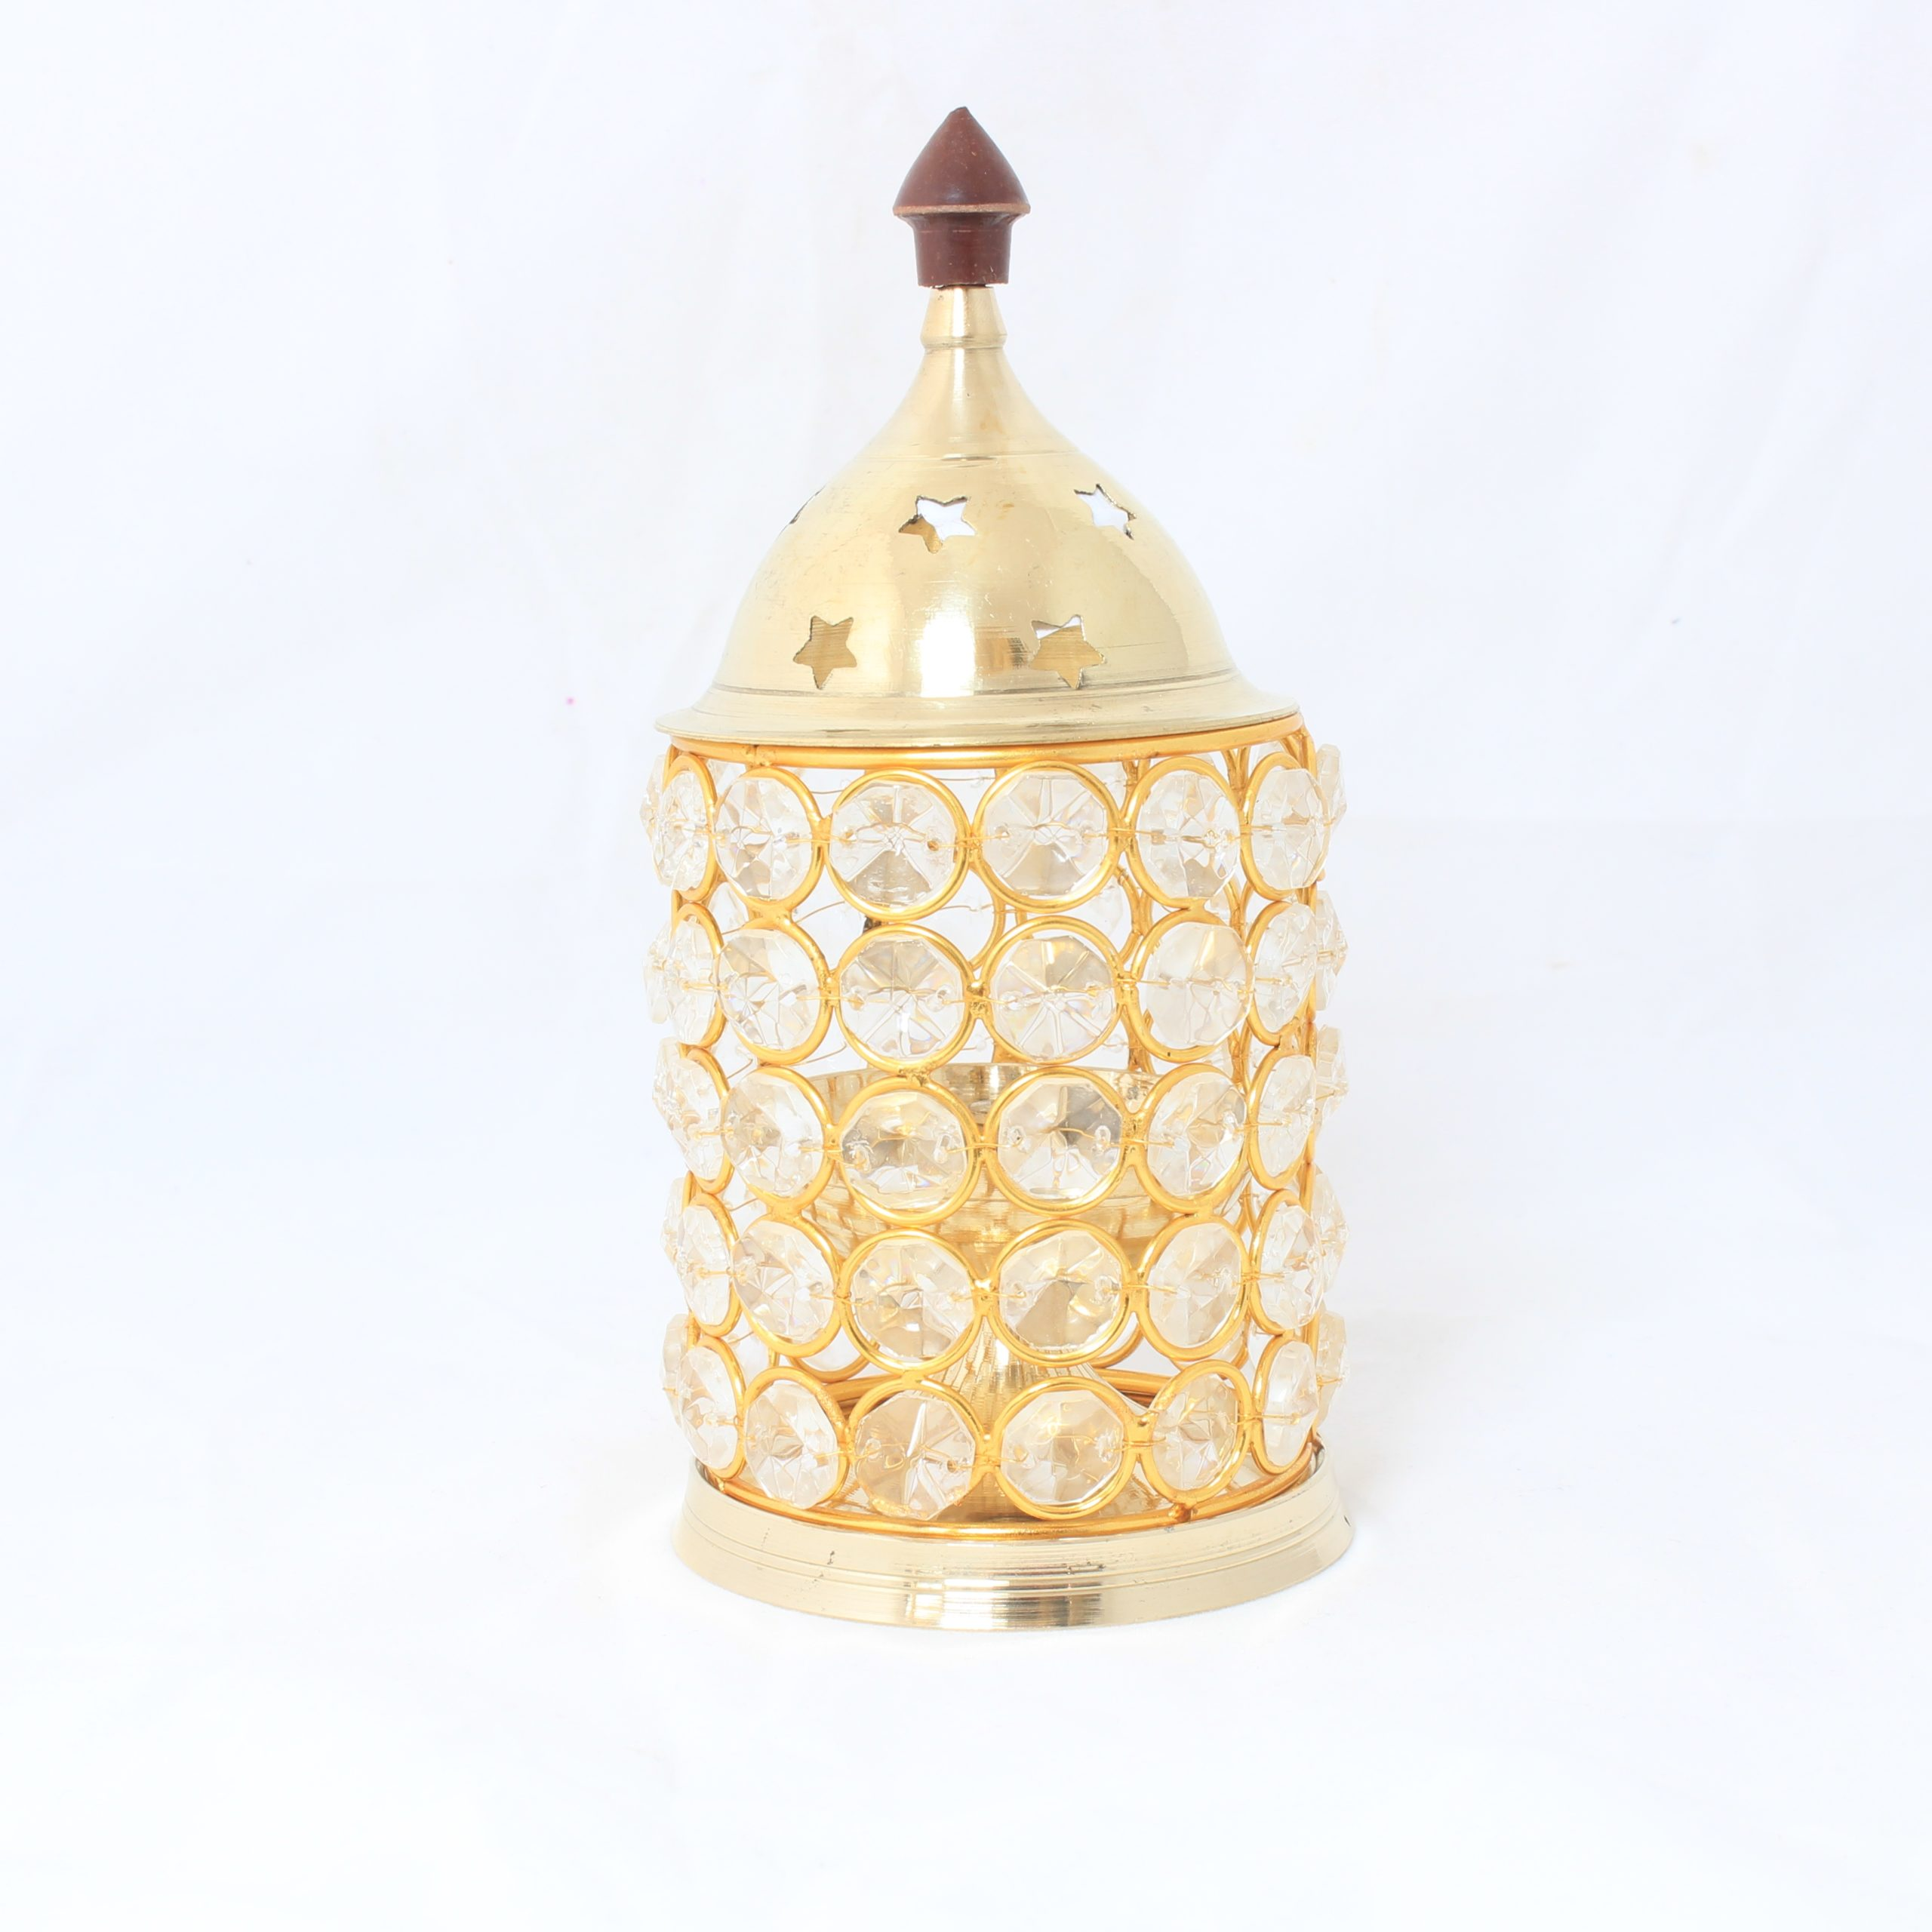 Crystal star lamp-0